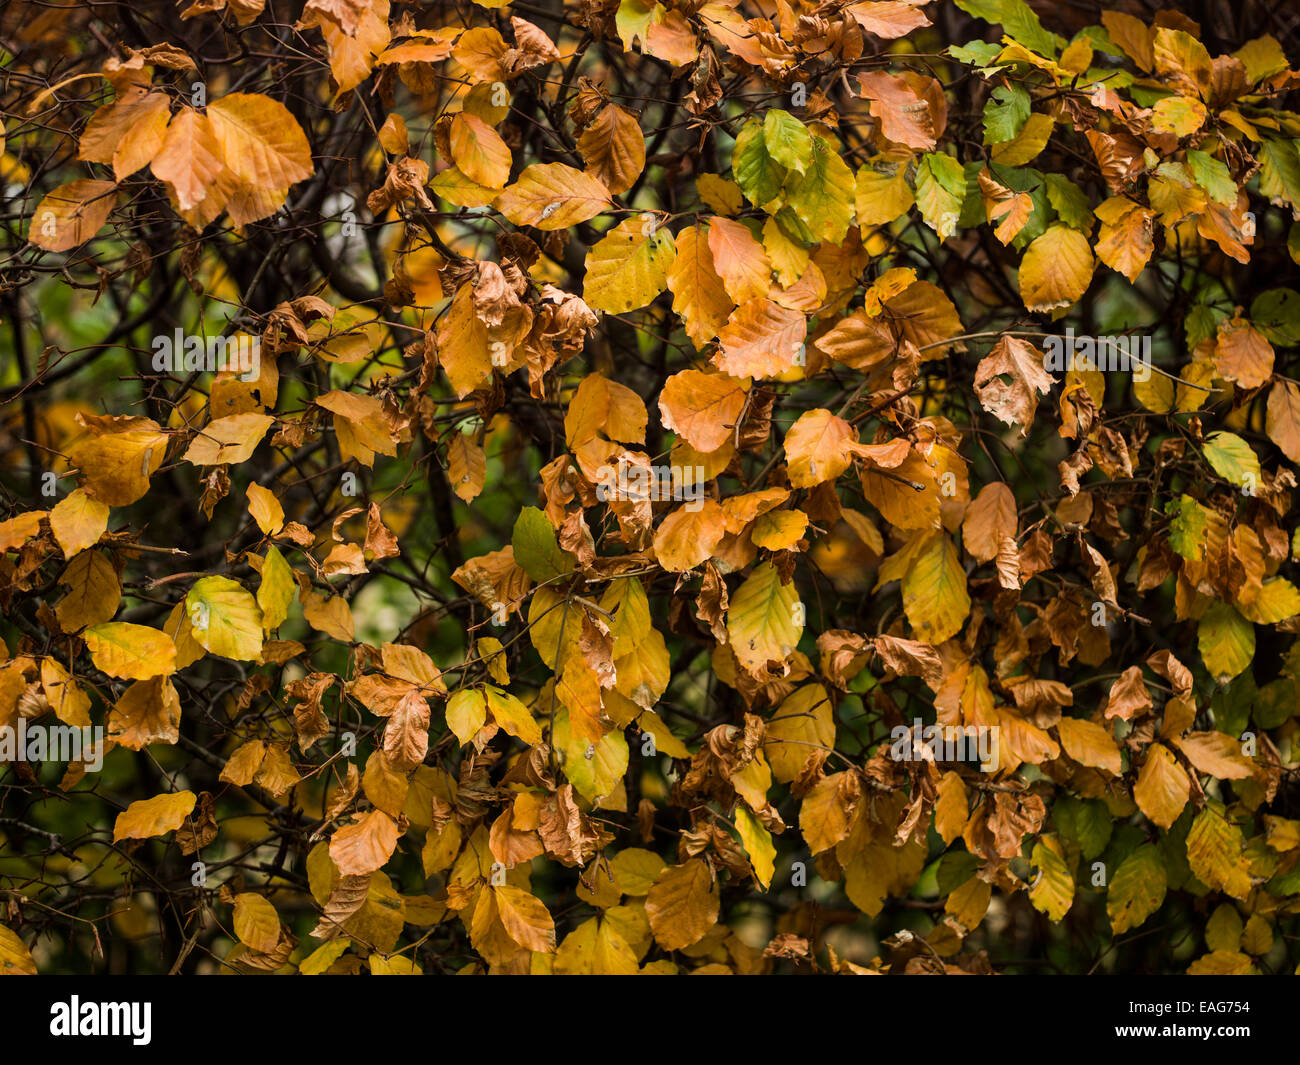 Autumn leaves. - Stock Image